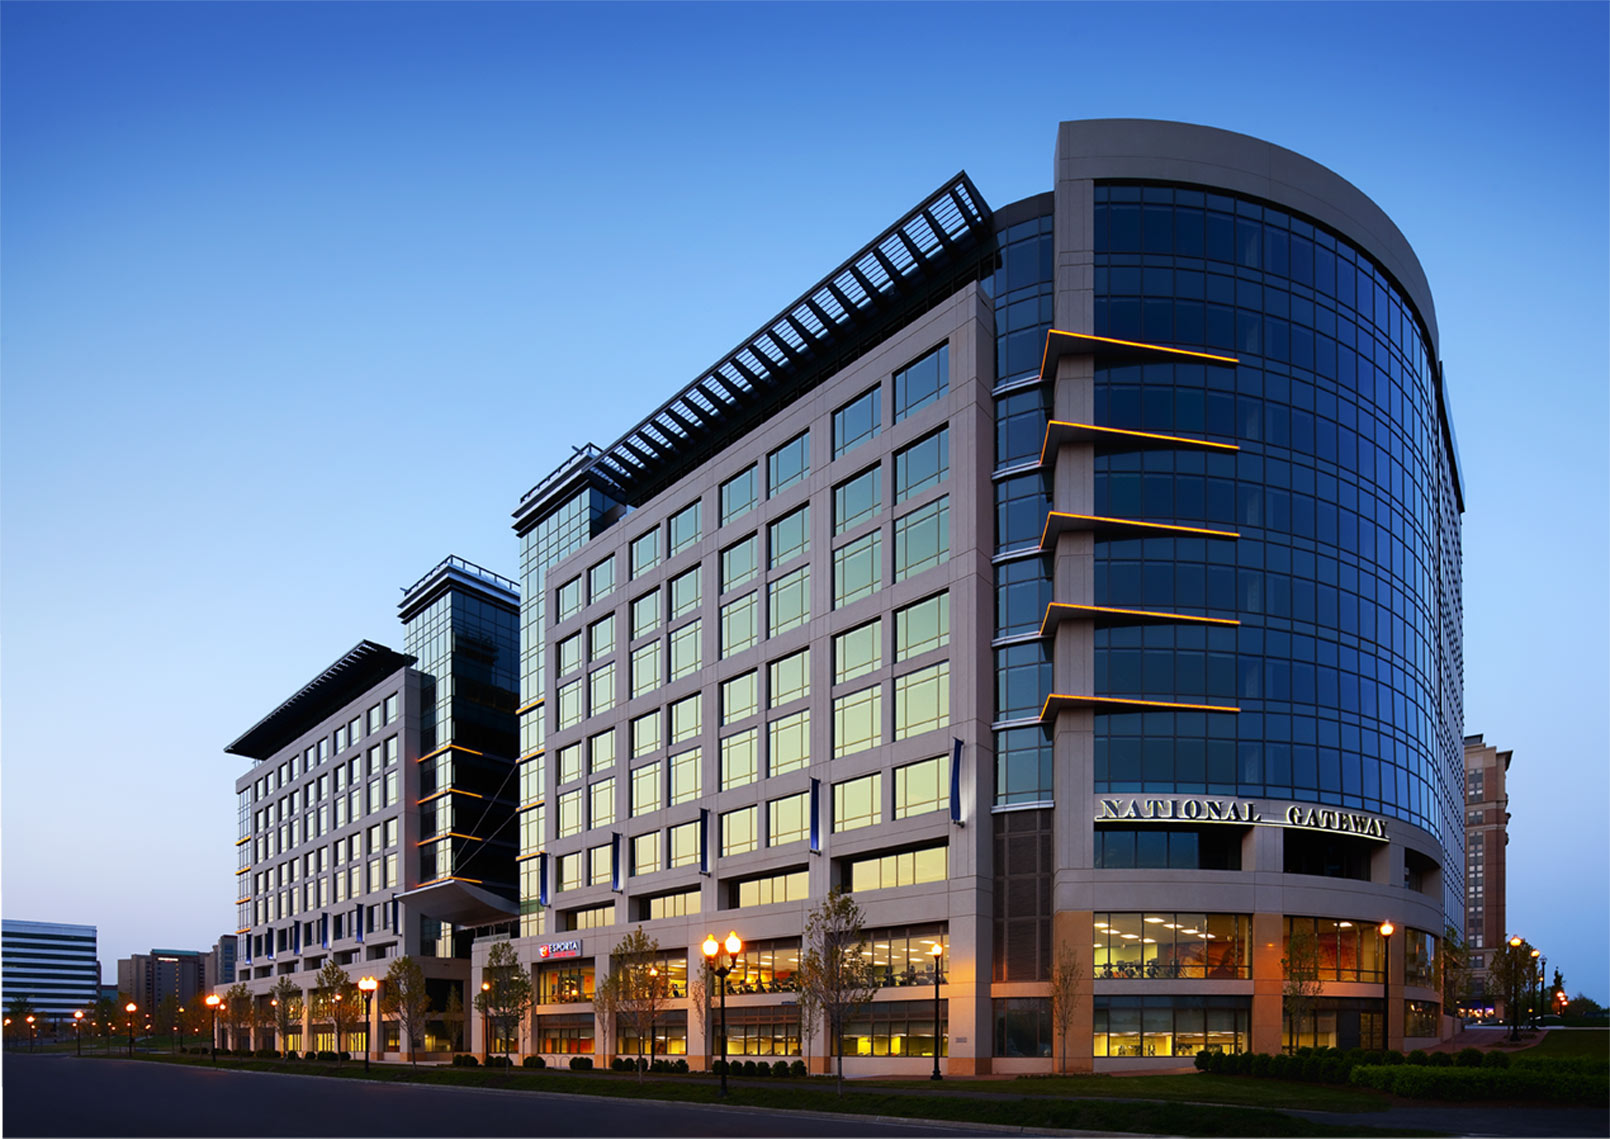 Architectural photograph of an office building at dusk